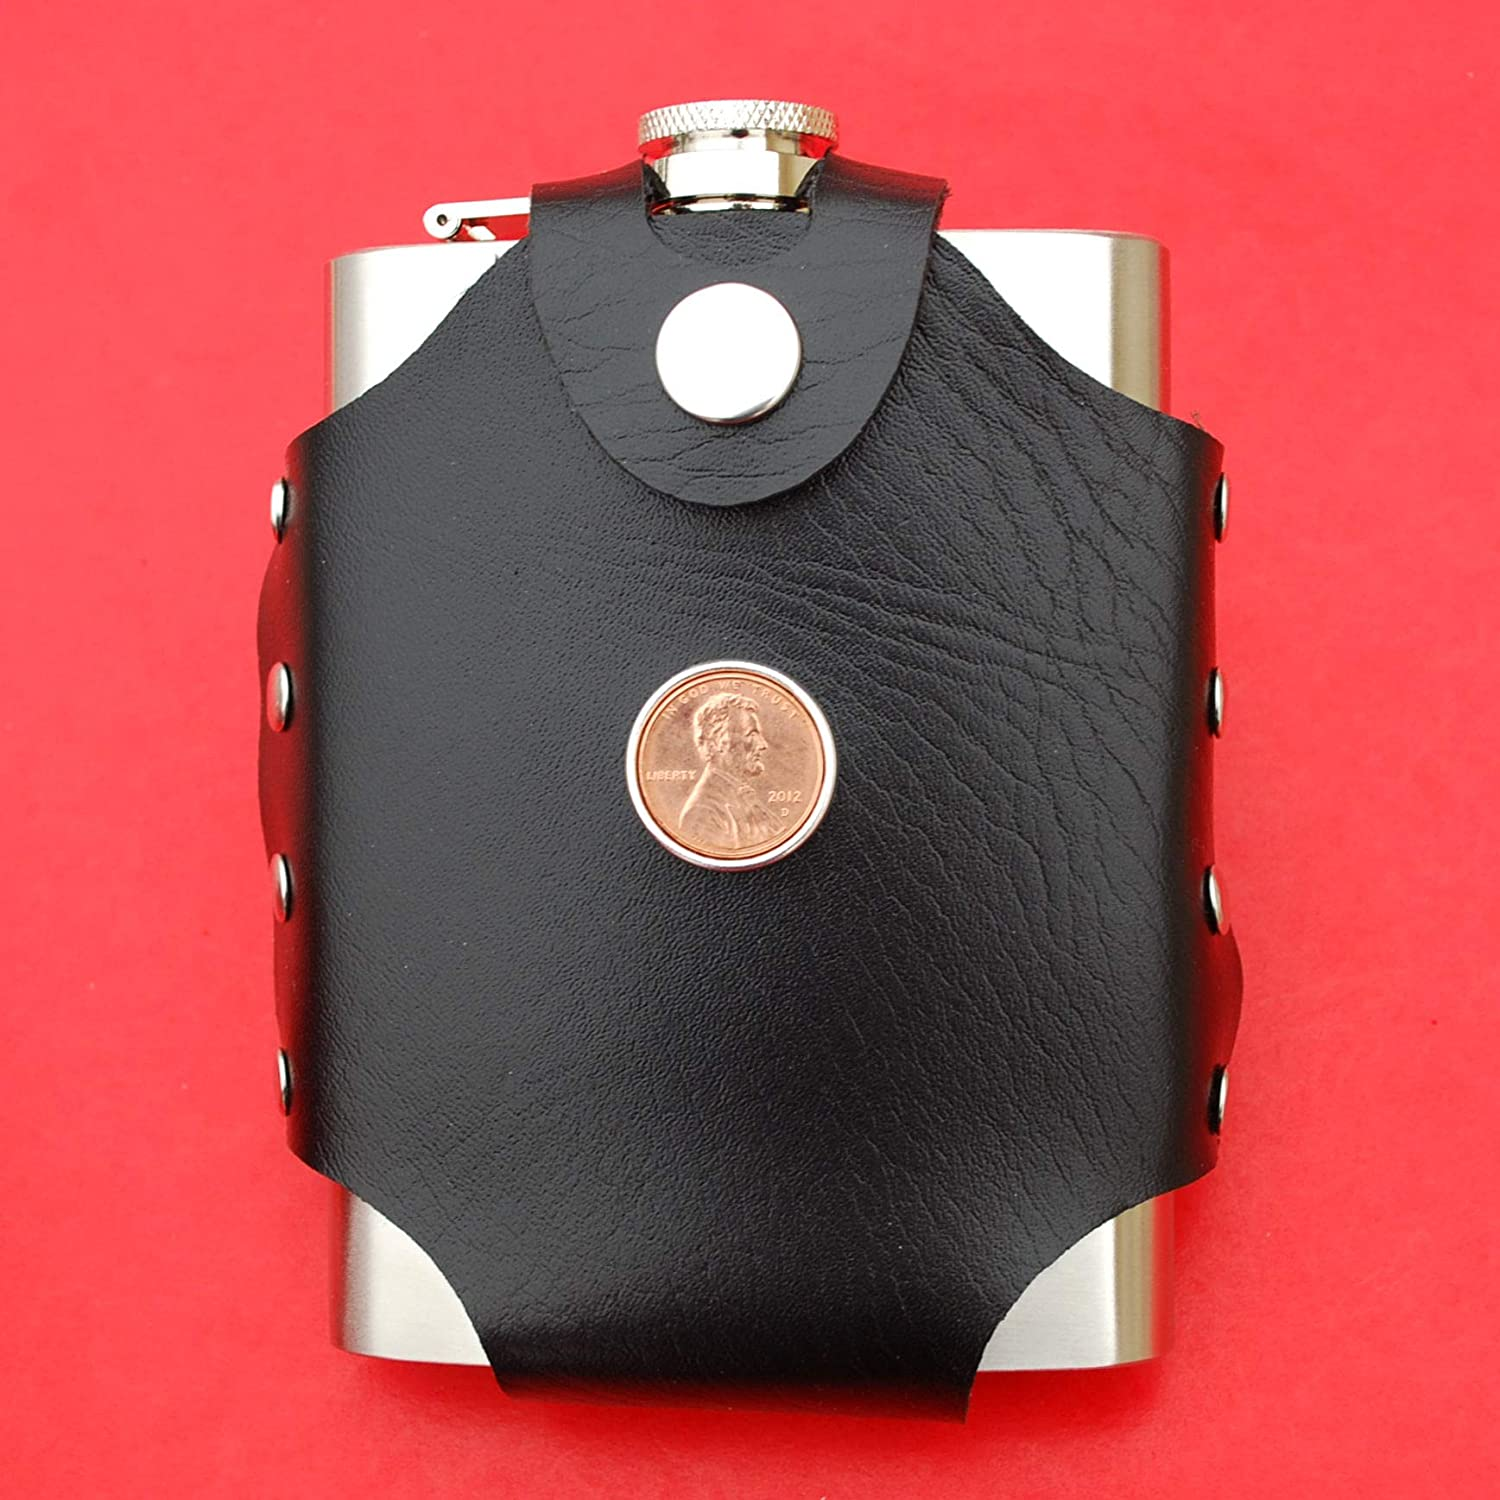 Liquor Wine etc - Lucky Penny US 2012 Lincoln Penny BU Uncirculated 1 Cent Coin Leak Proof Black PU Leather Wrapped Stainless Steel 8 Oz Hip Flask Water